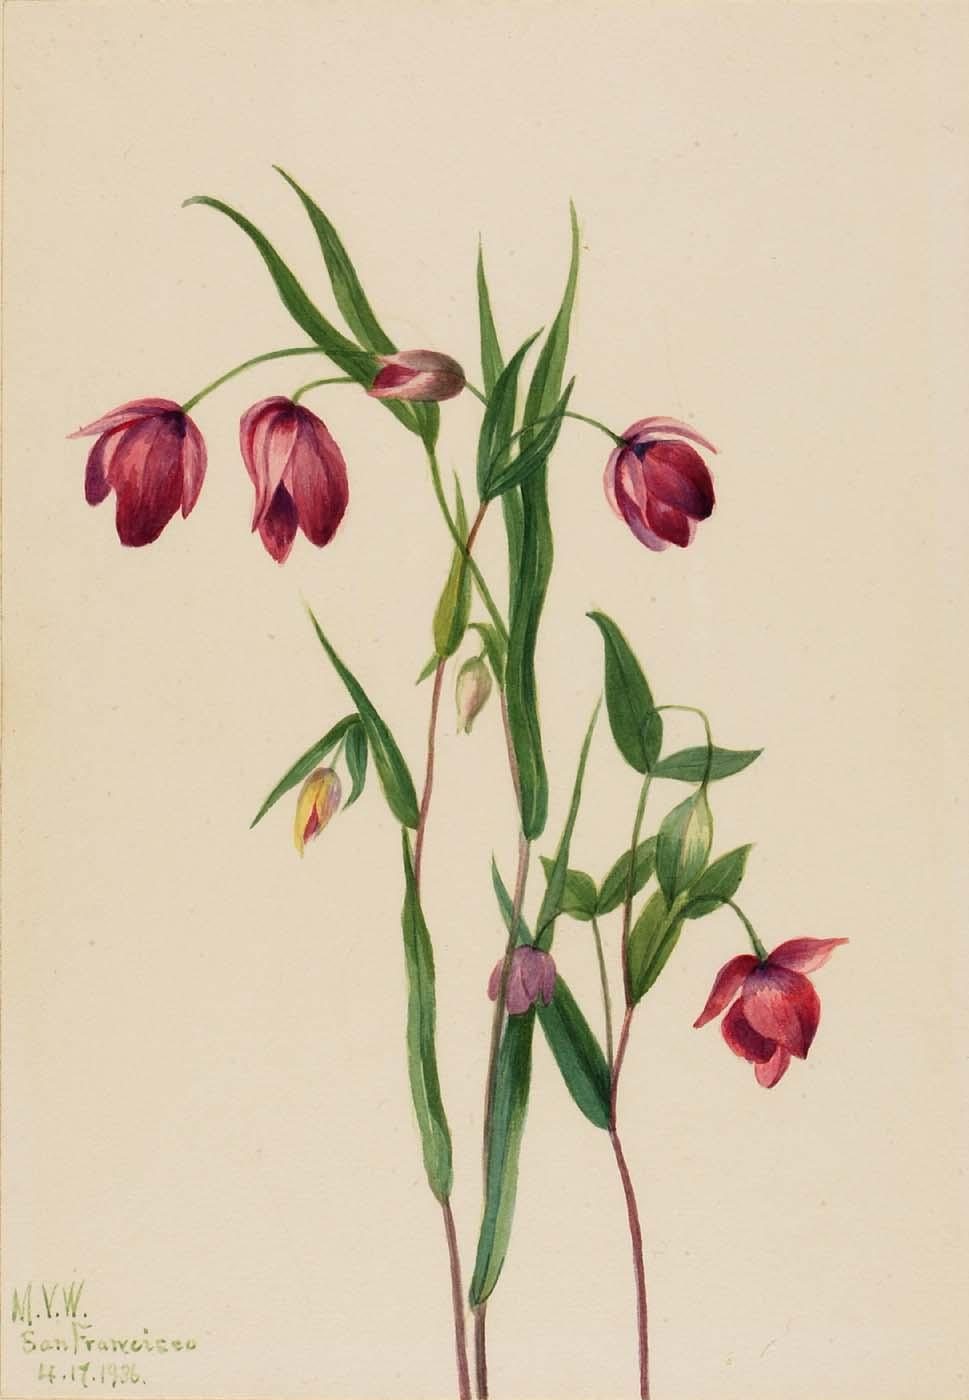 紫色 仙女灯笼 ( Calochortus anoenum ), 1936 通过 Mary Vaux Walcott (1860-1940, United States) | 傑作拷貝 | ArtsDot.com